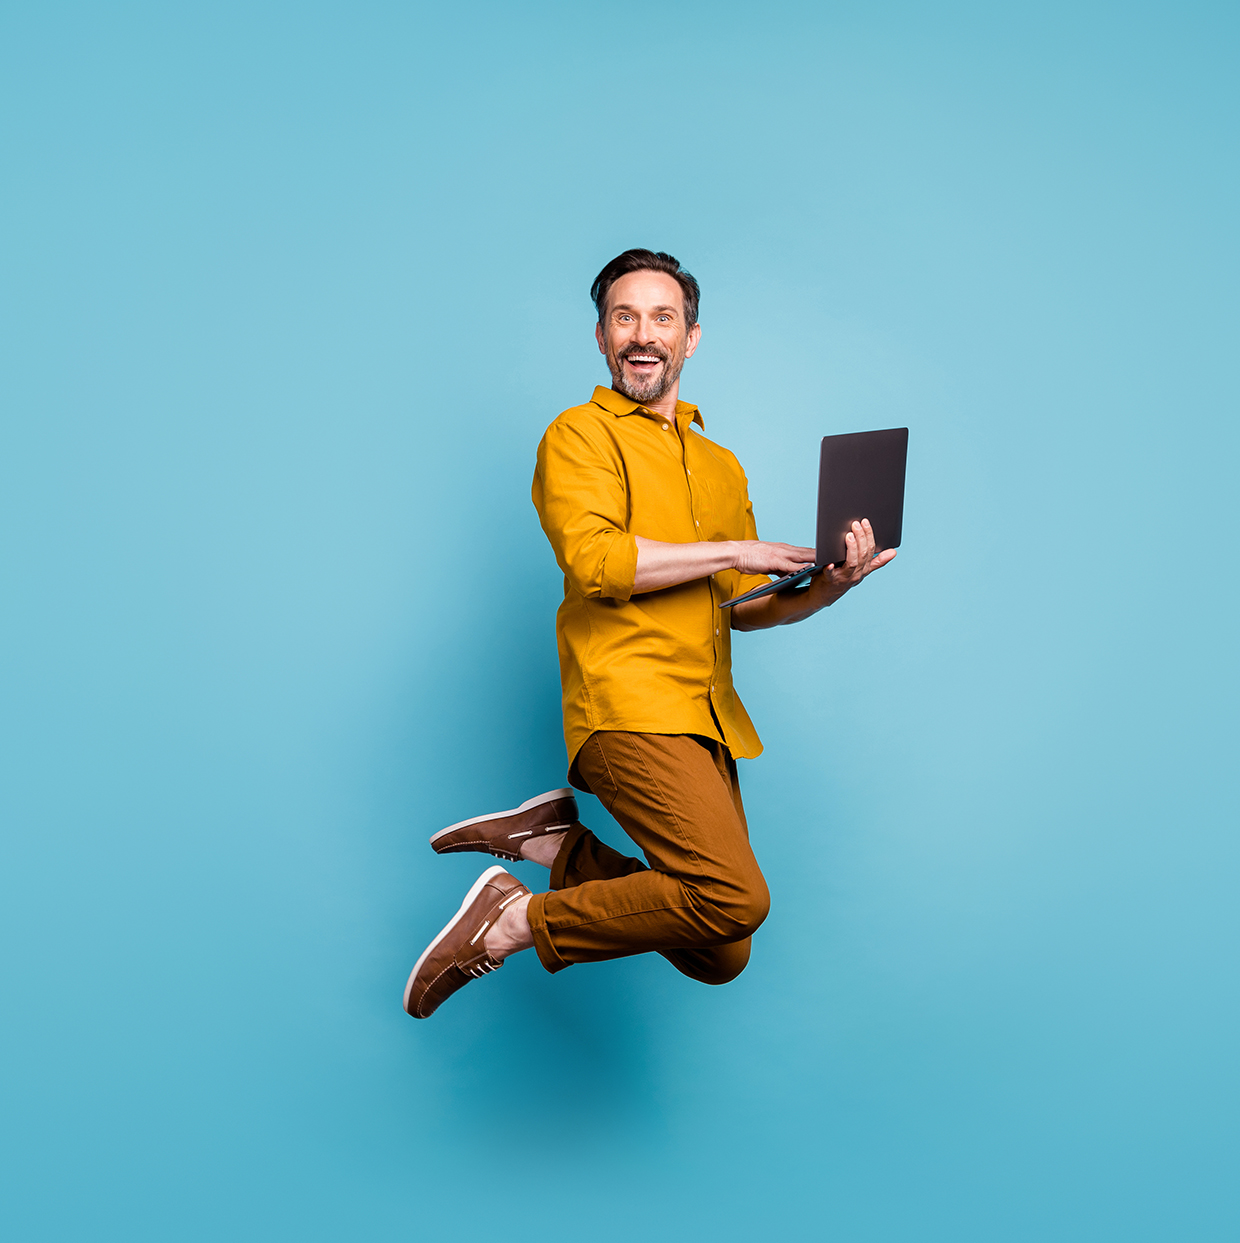 Man jumping with laptop